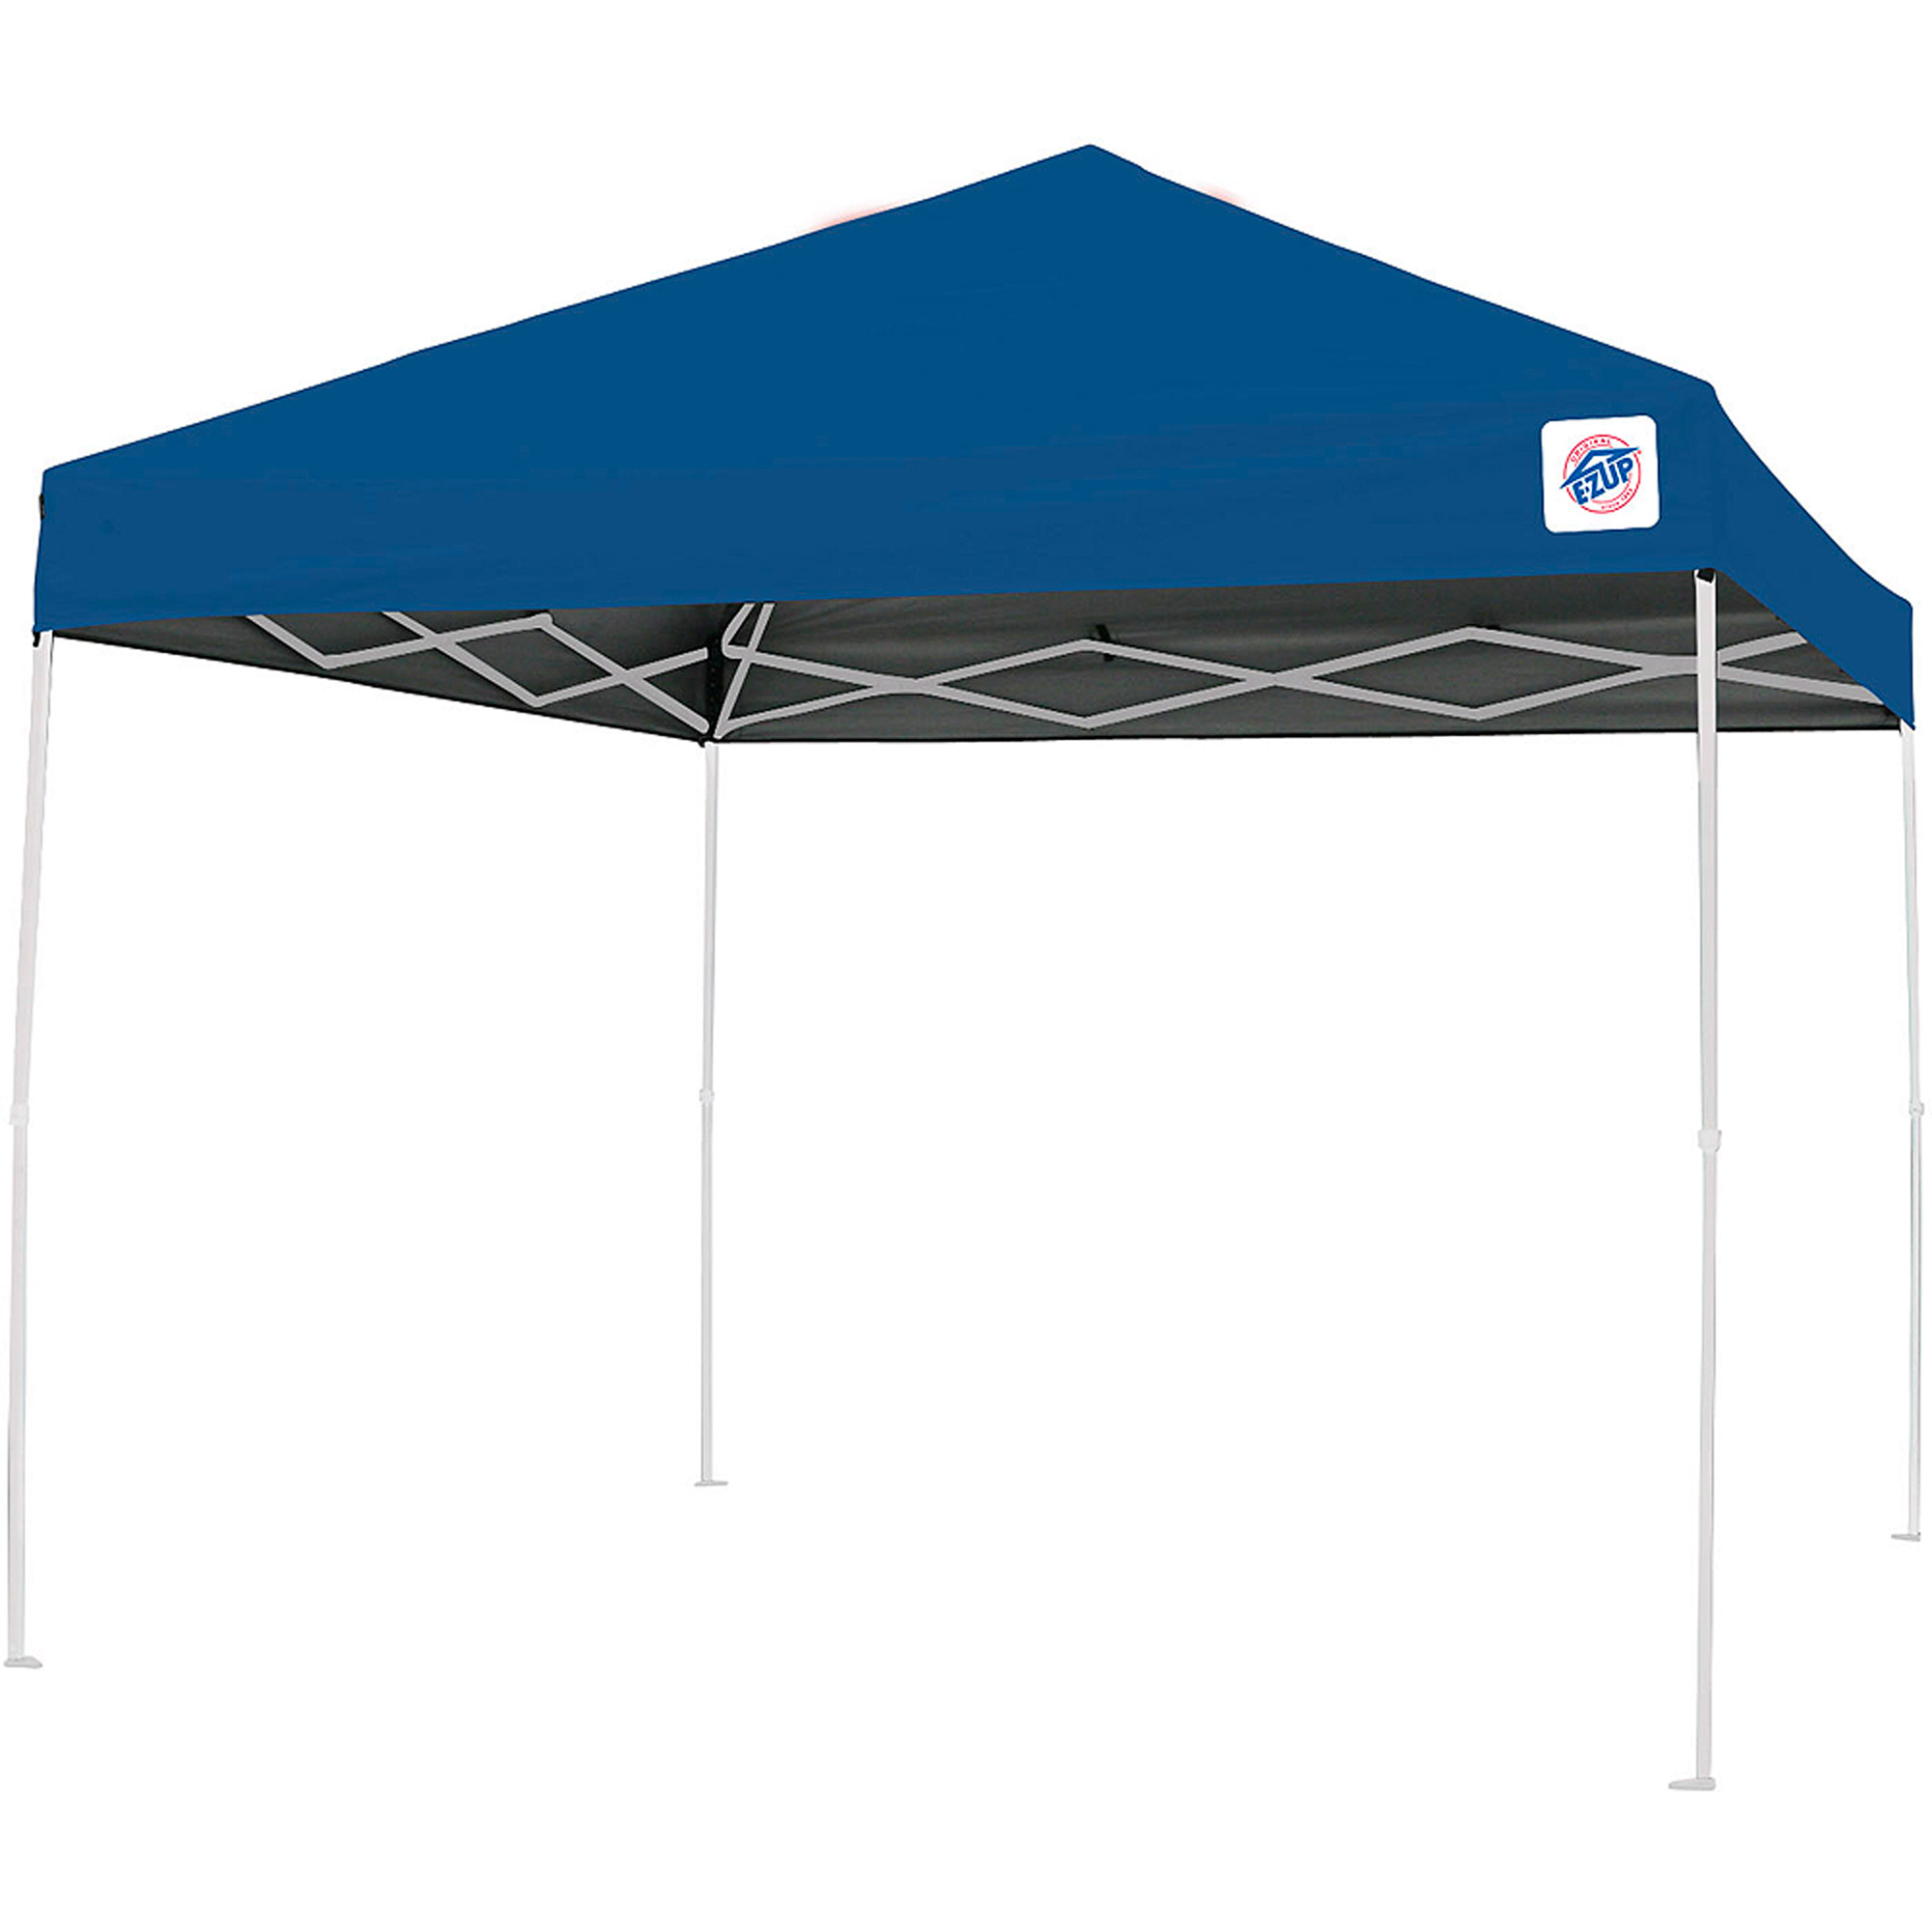 Pop Up Canopy Details About E Z Up Envoy 10 X10 Straight Leg Instant Canopy 100 Sq Ft Coverage